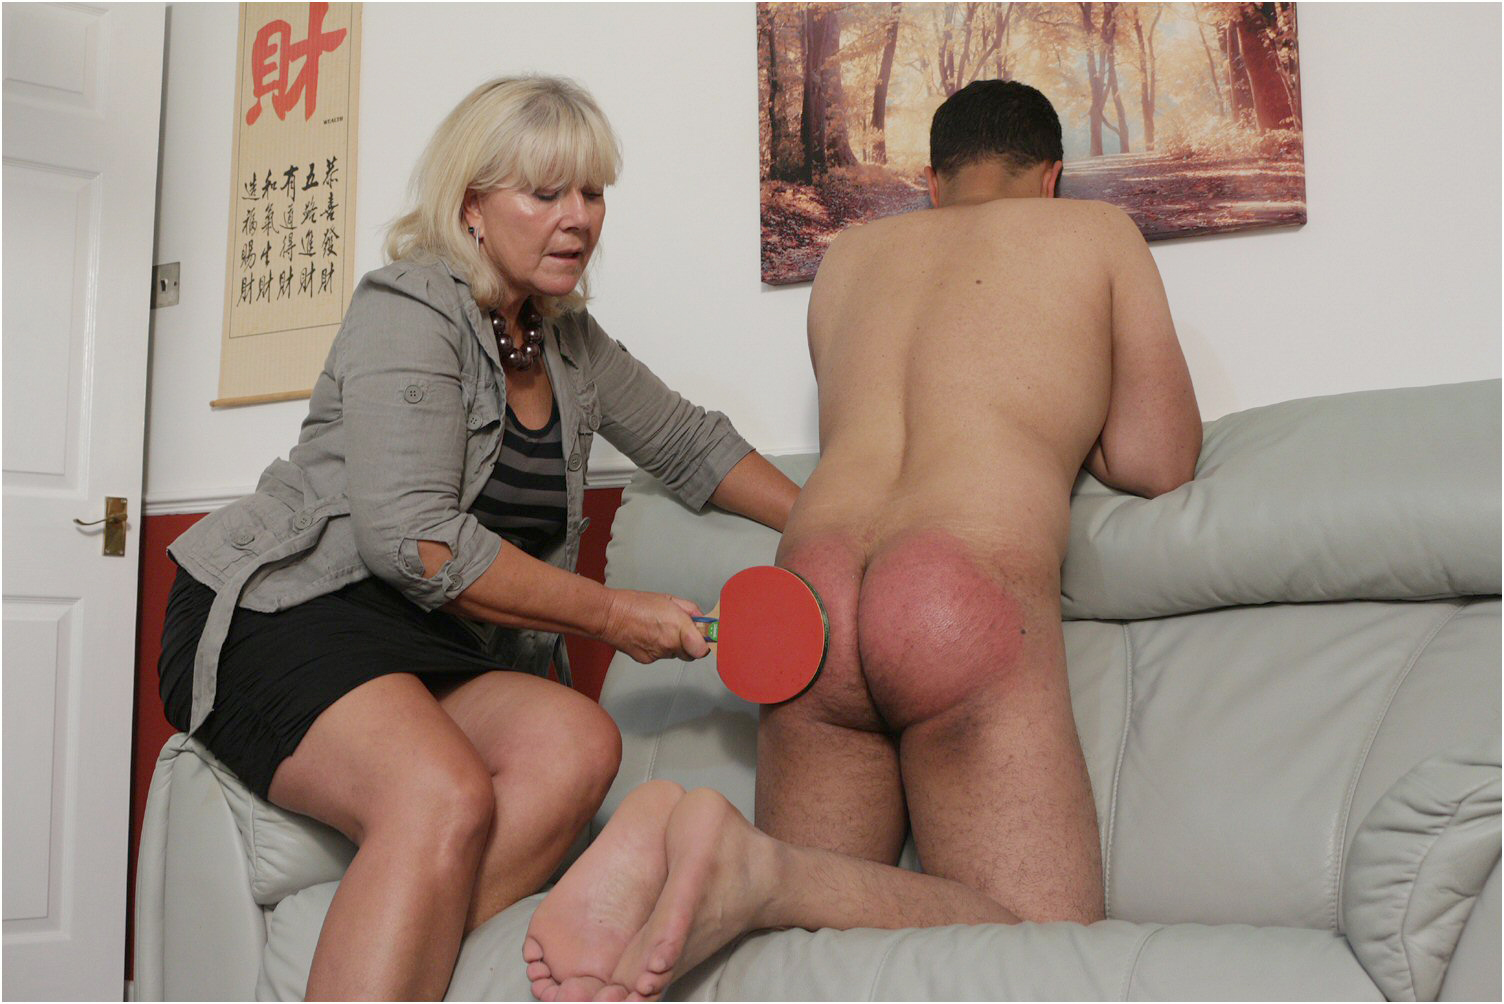 Guys spanking boys free sex monkey 6